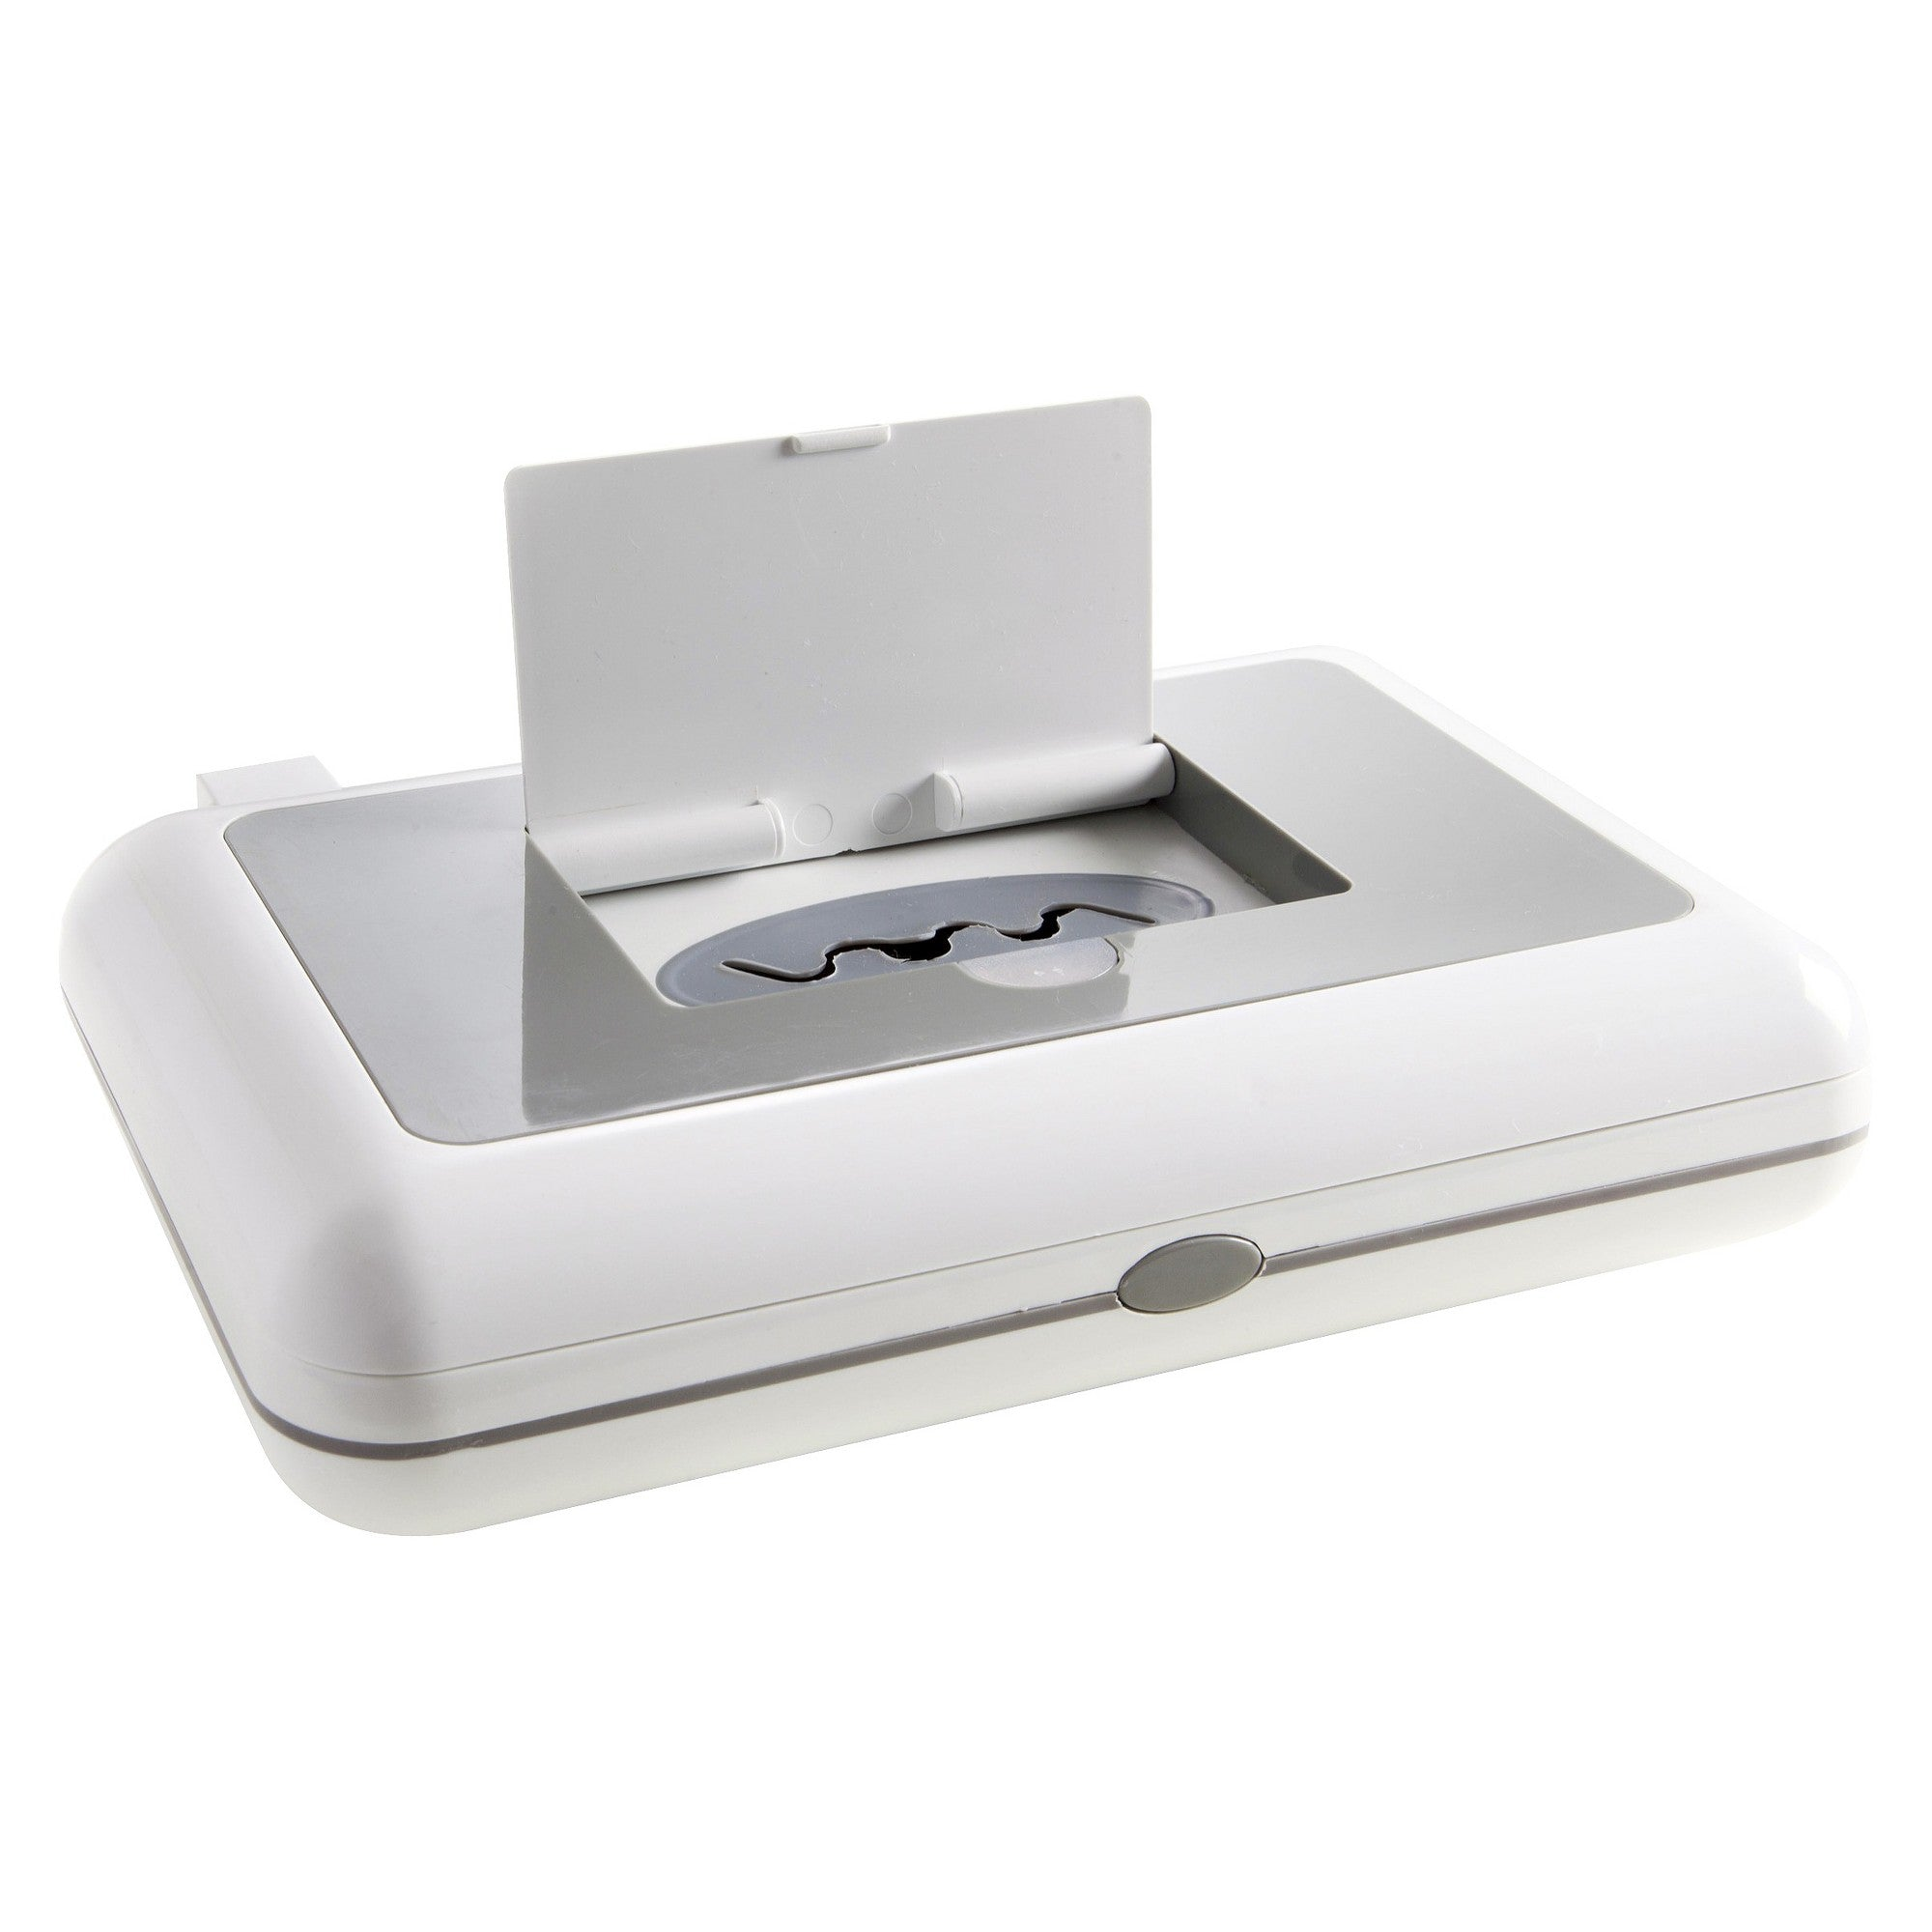 Prince Lionheart Compact Wipes Warmer in Grey